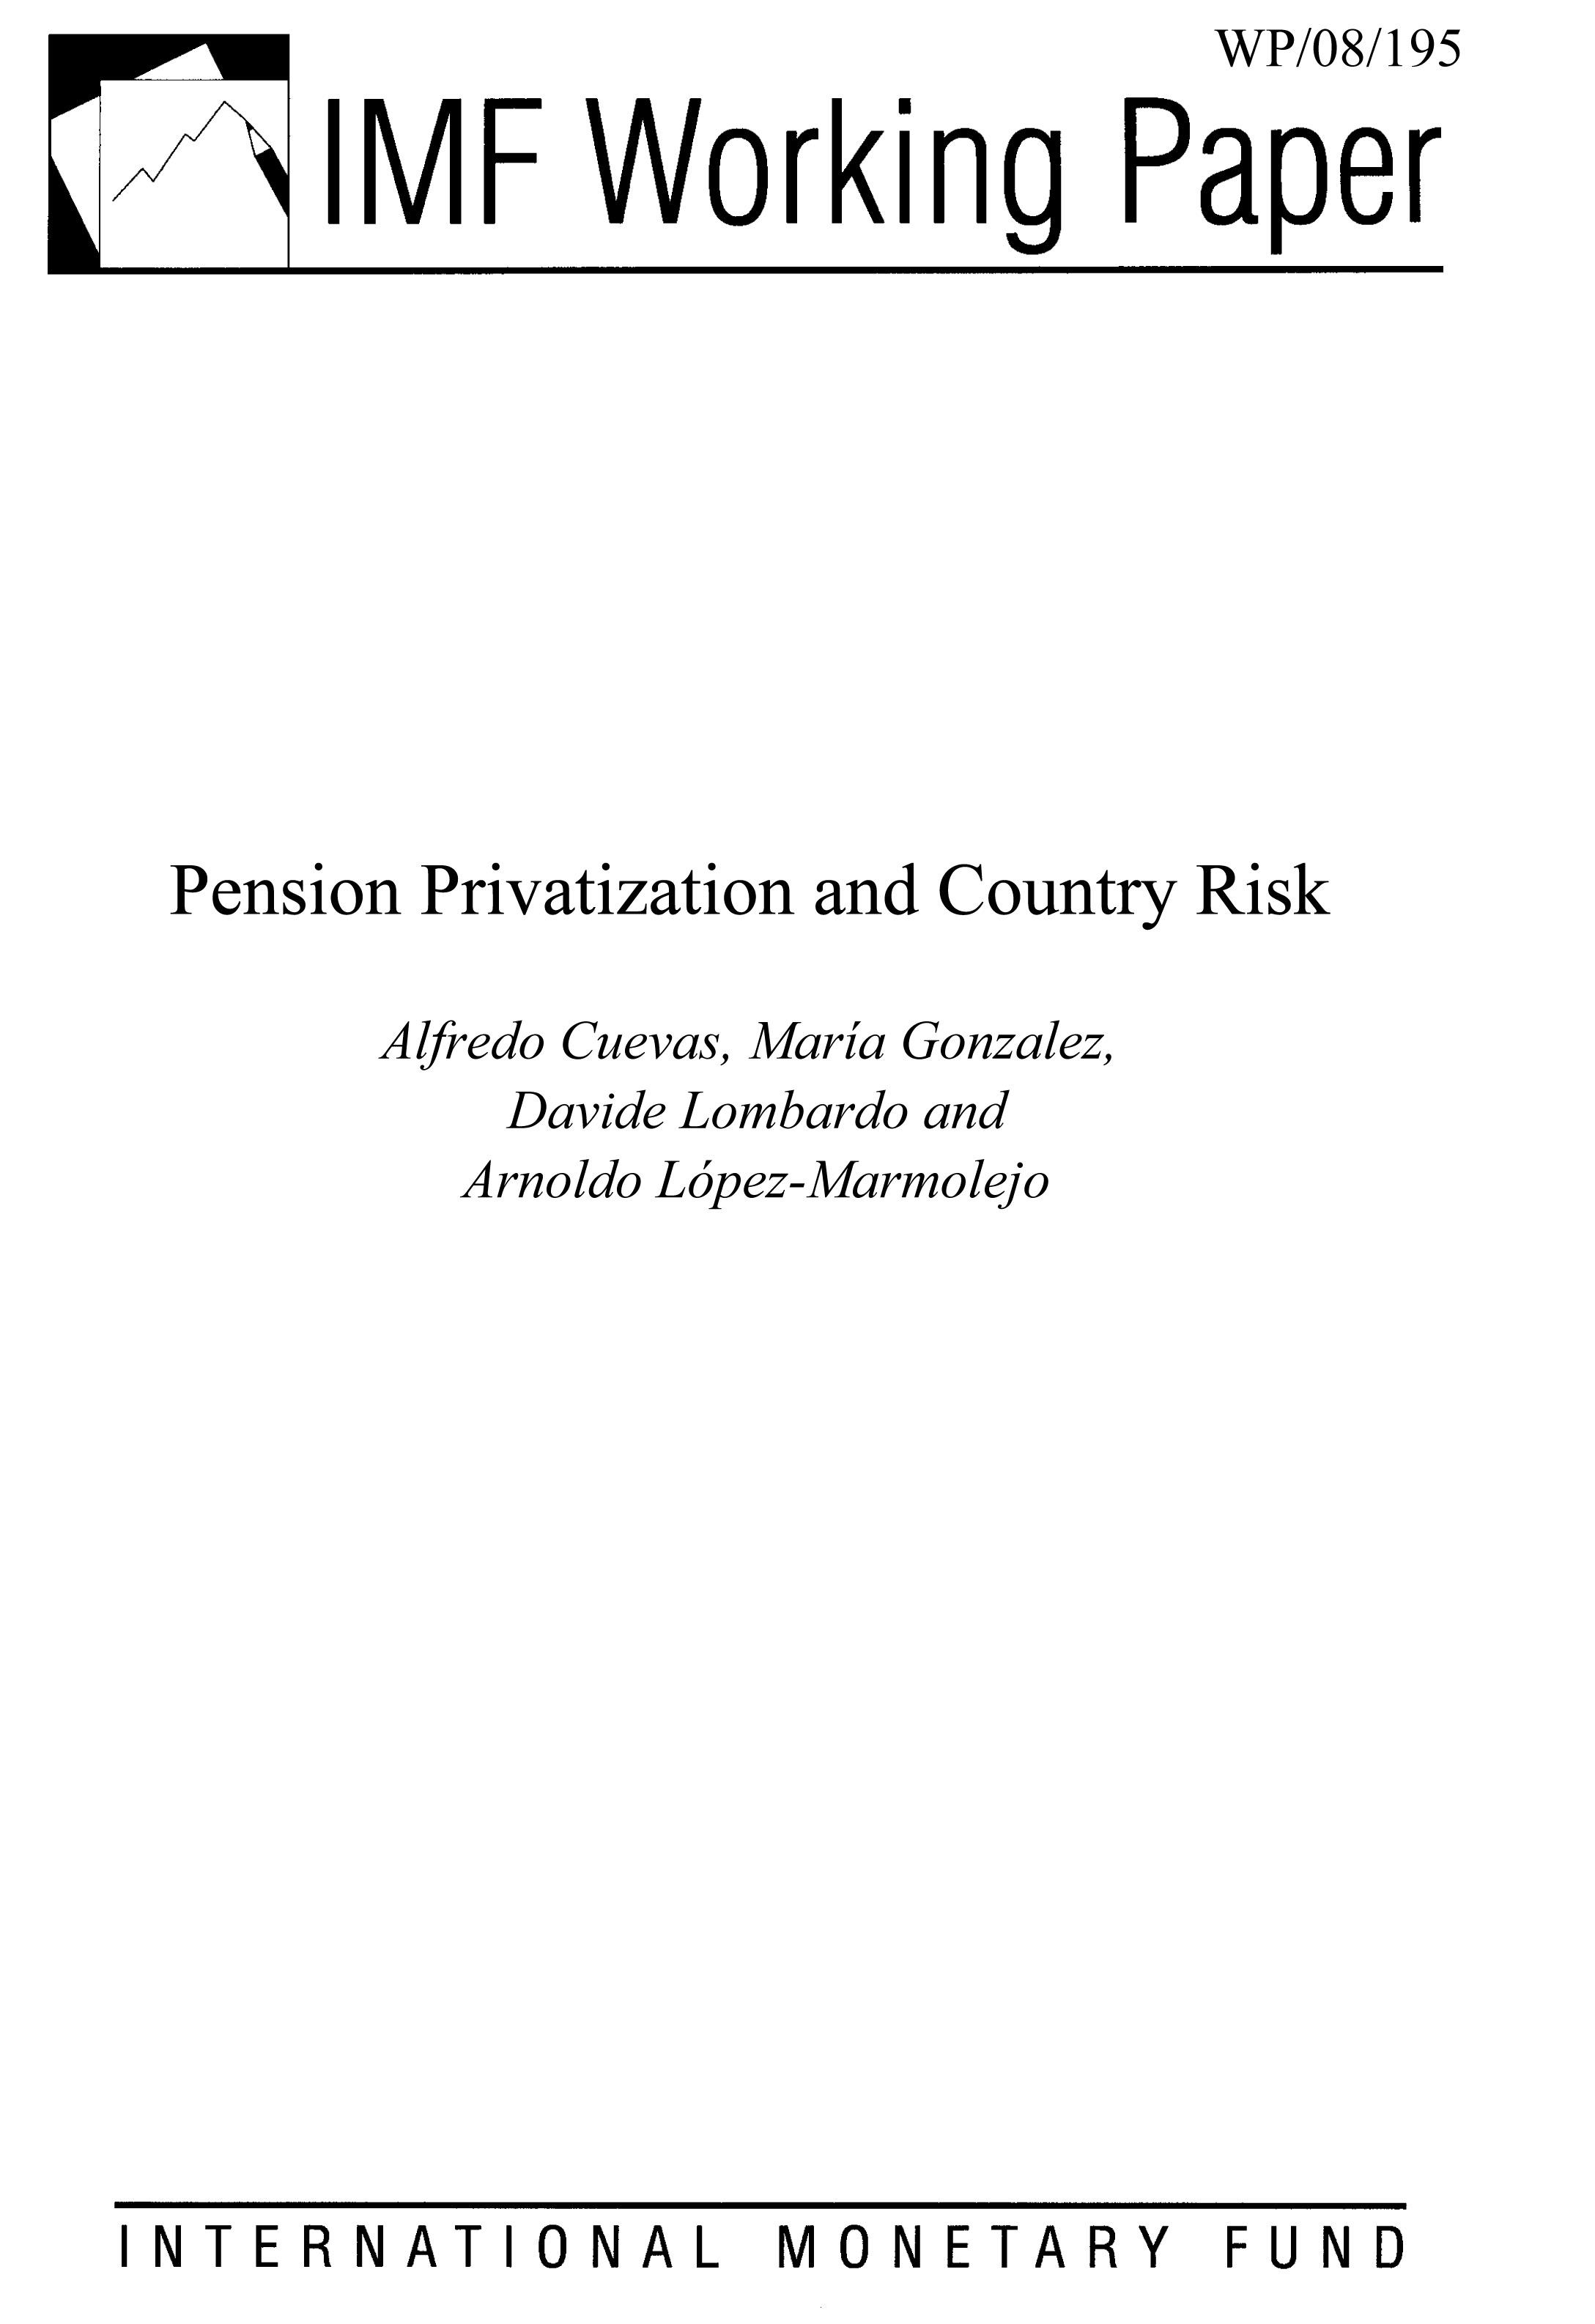 Pension Privatization and Country Risk